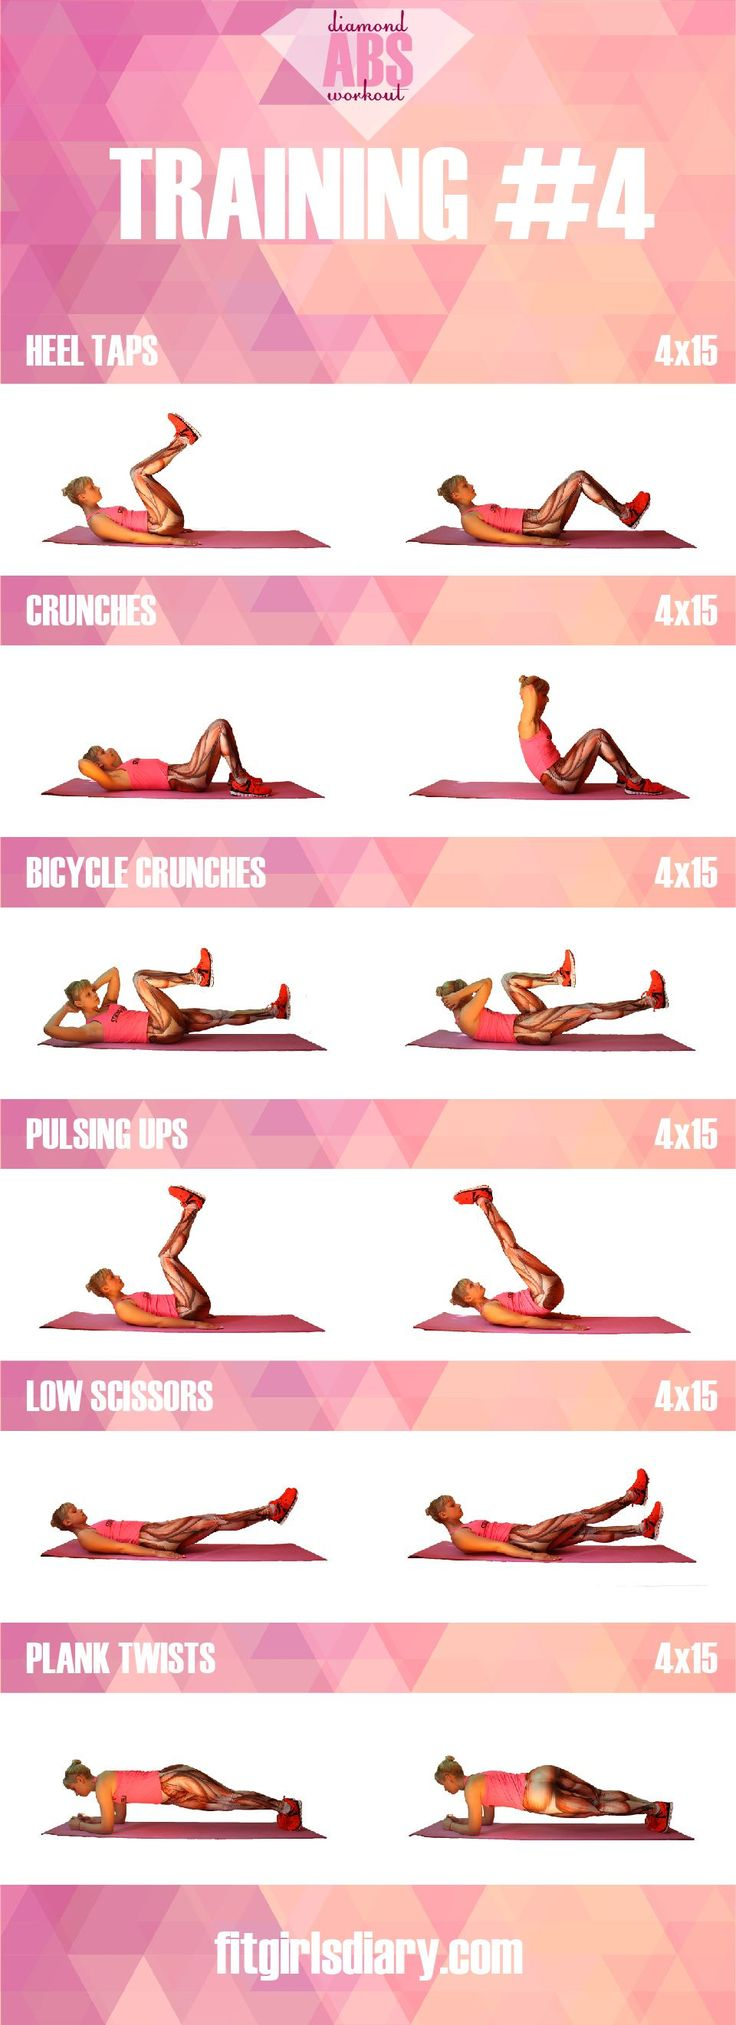 Diamond Abs Workout - Collection Of The Best Ab Exercises for Women -